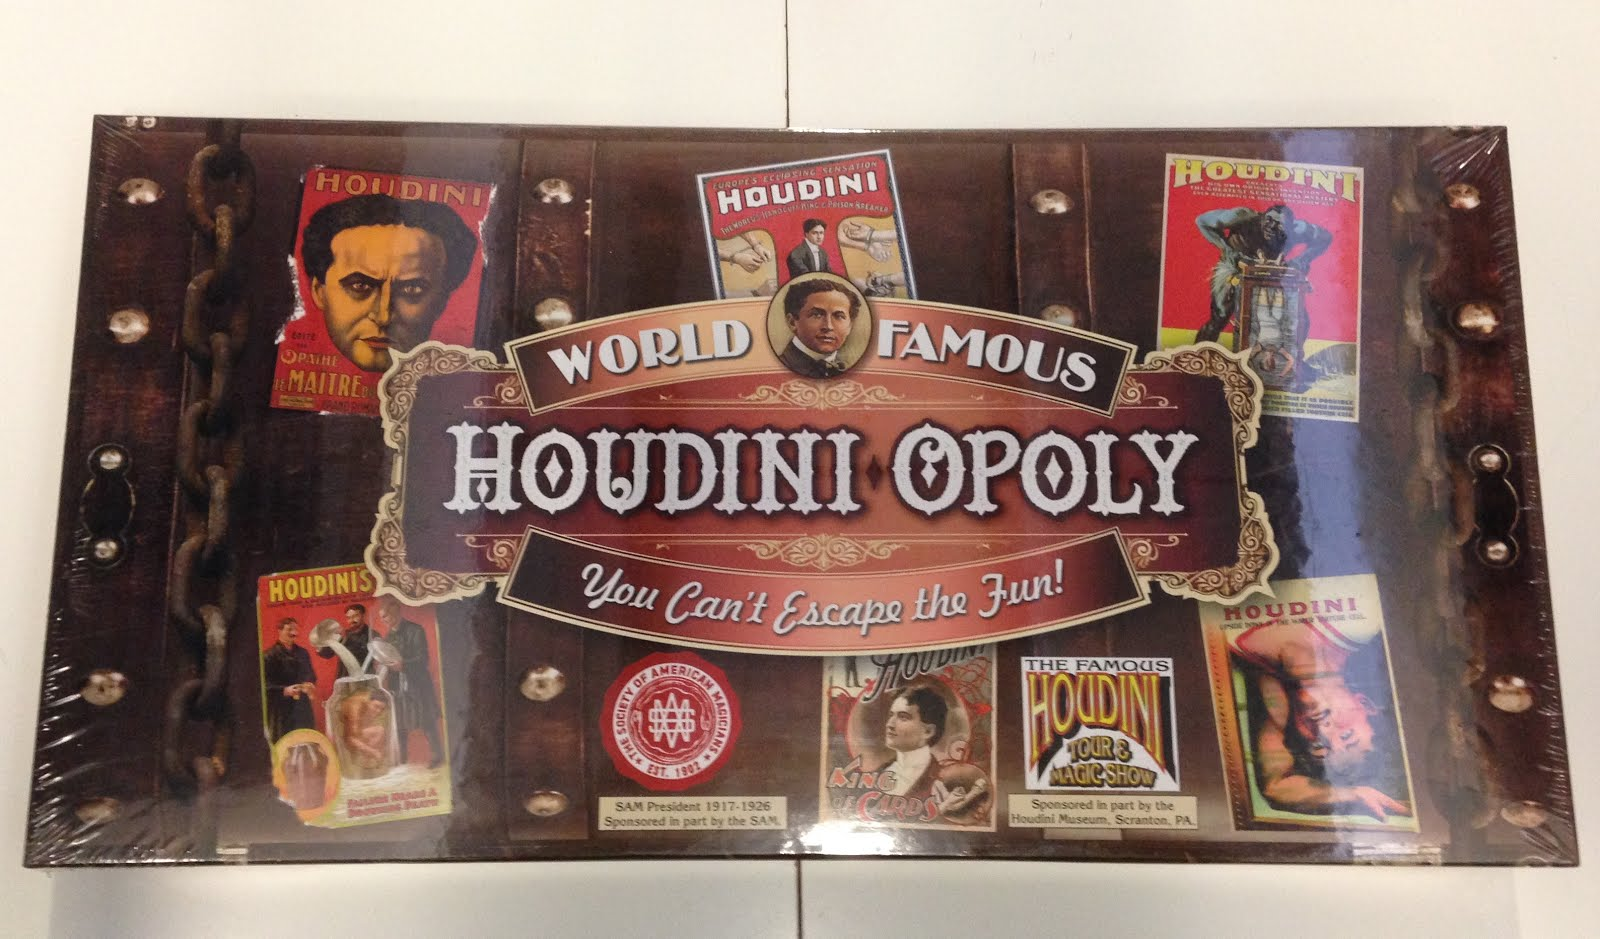 Houdini-Opoly Board Game